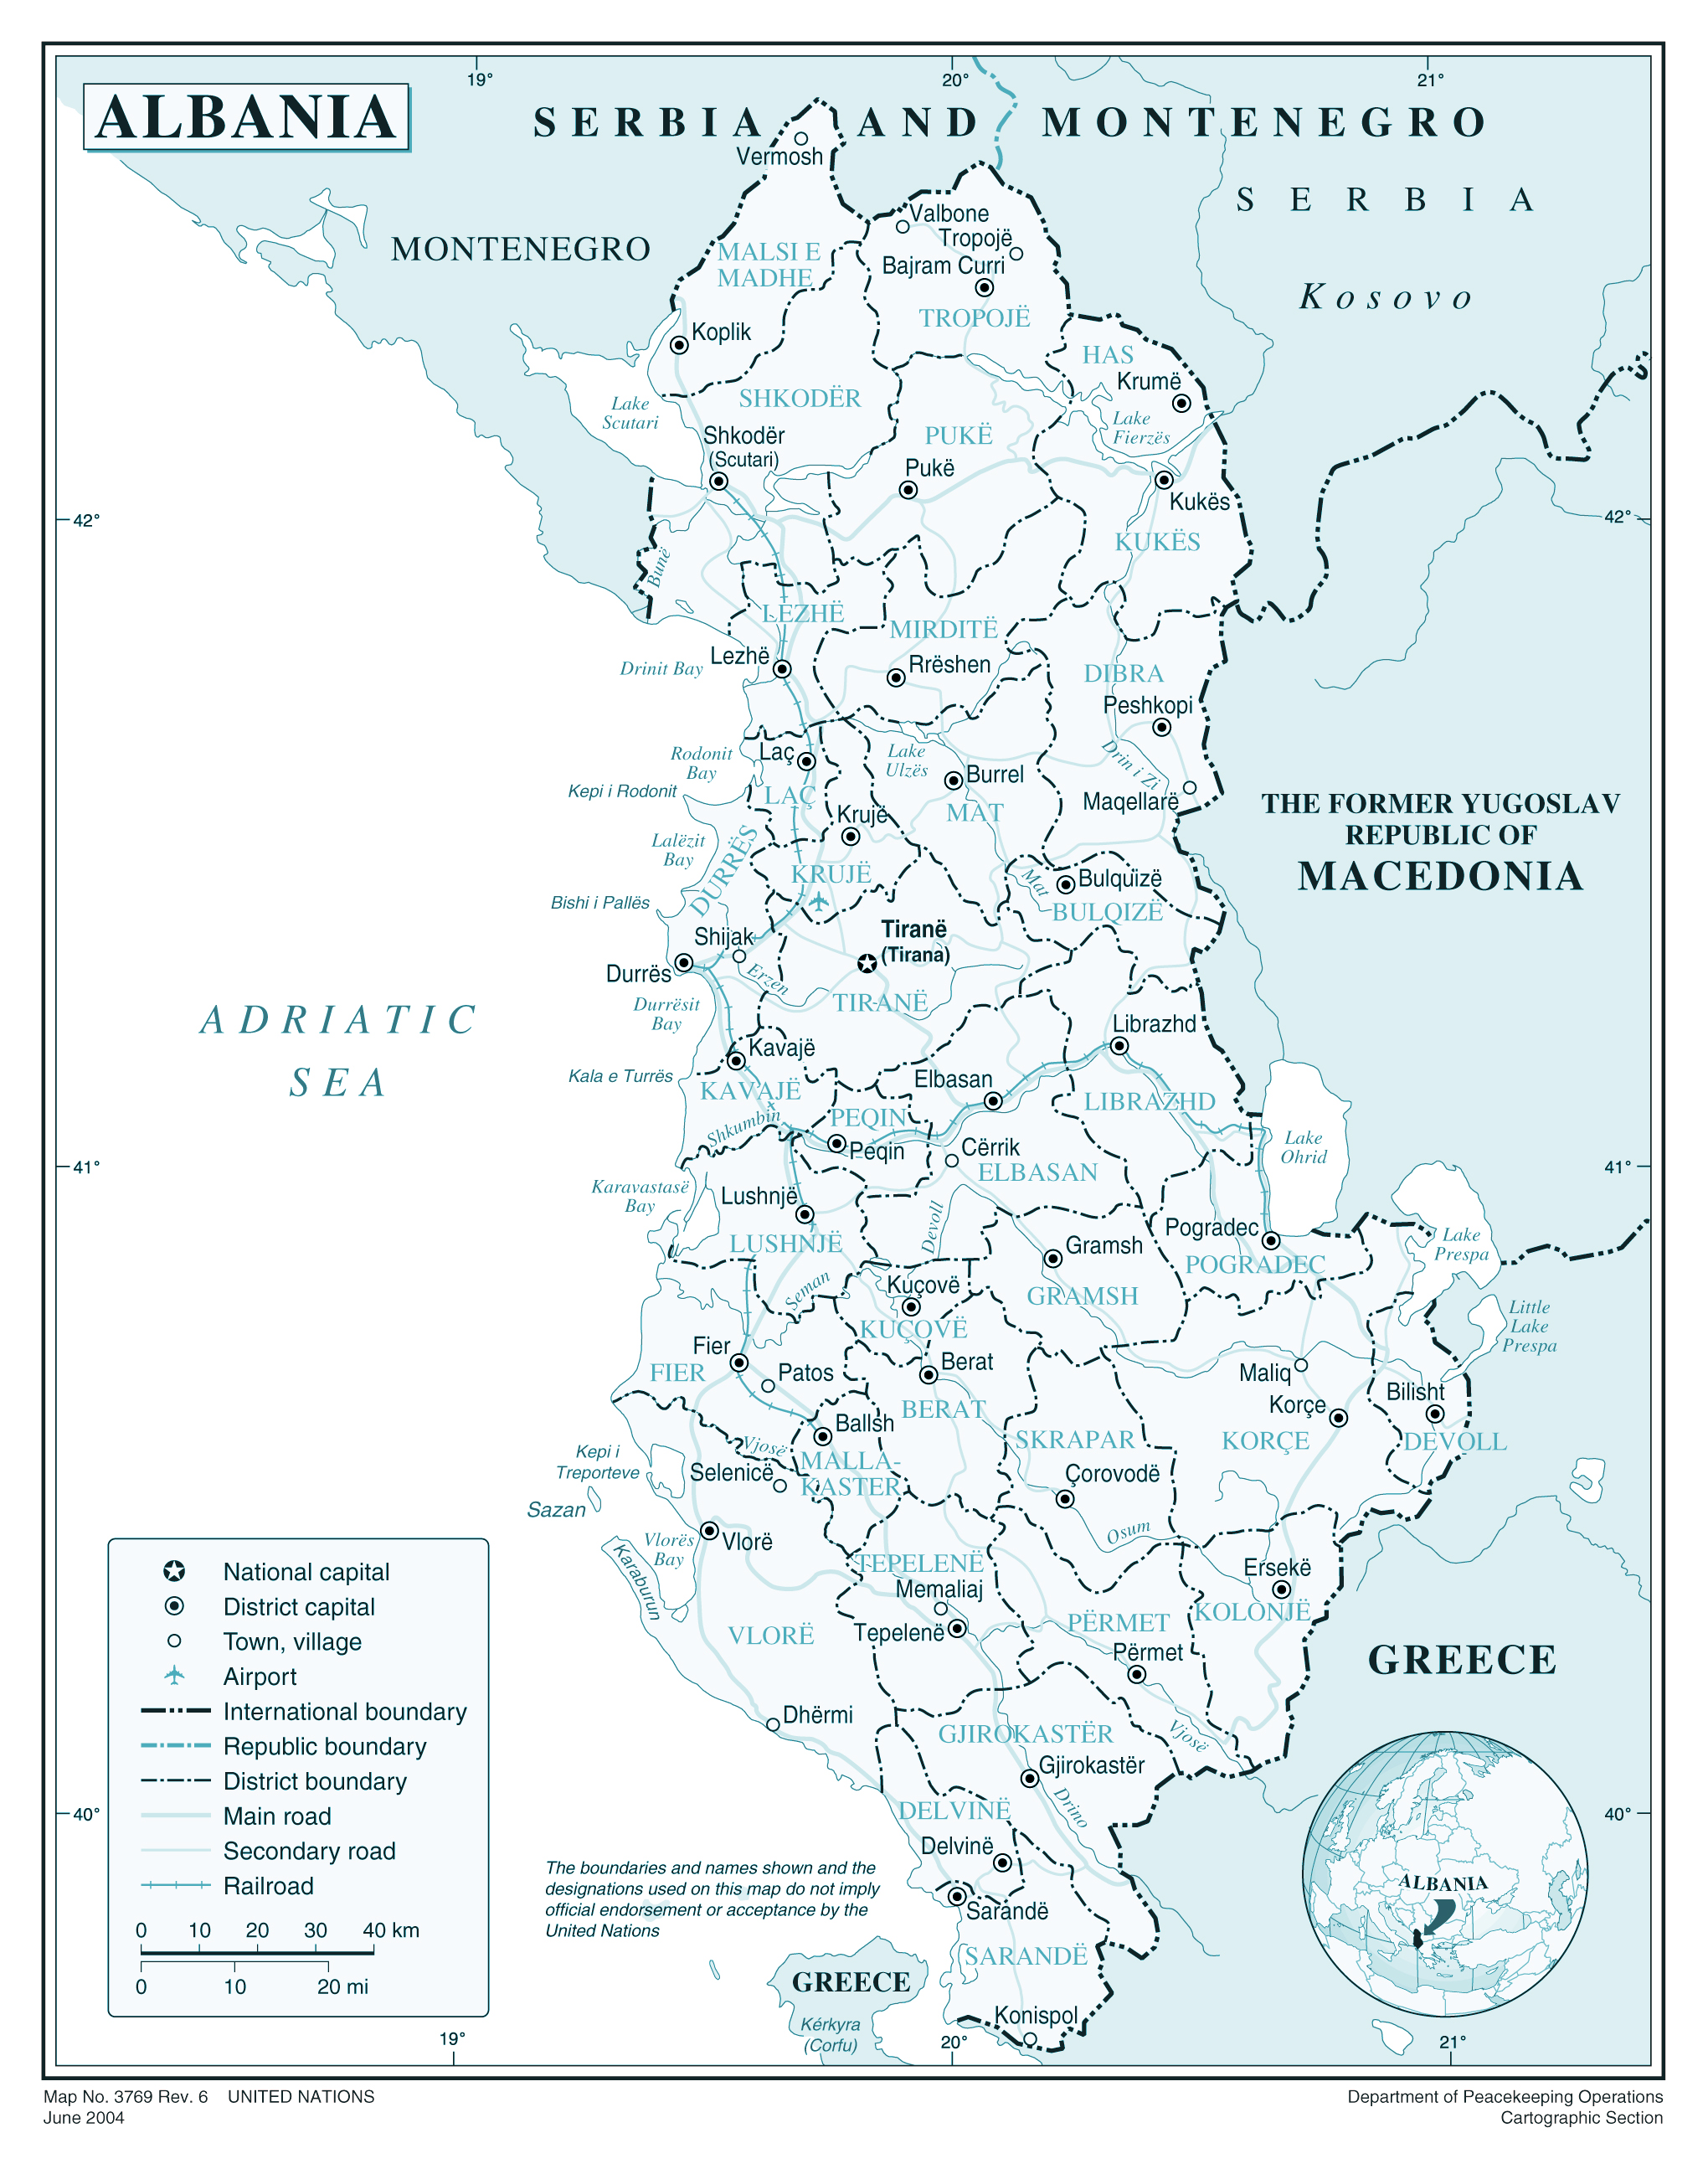 Large detailed political and administrative map of Albania with